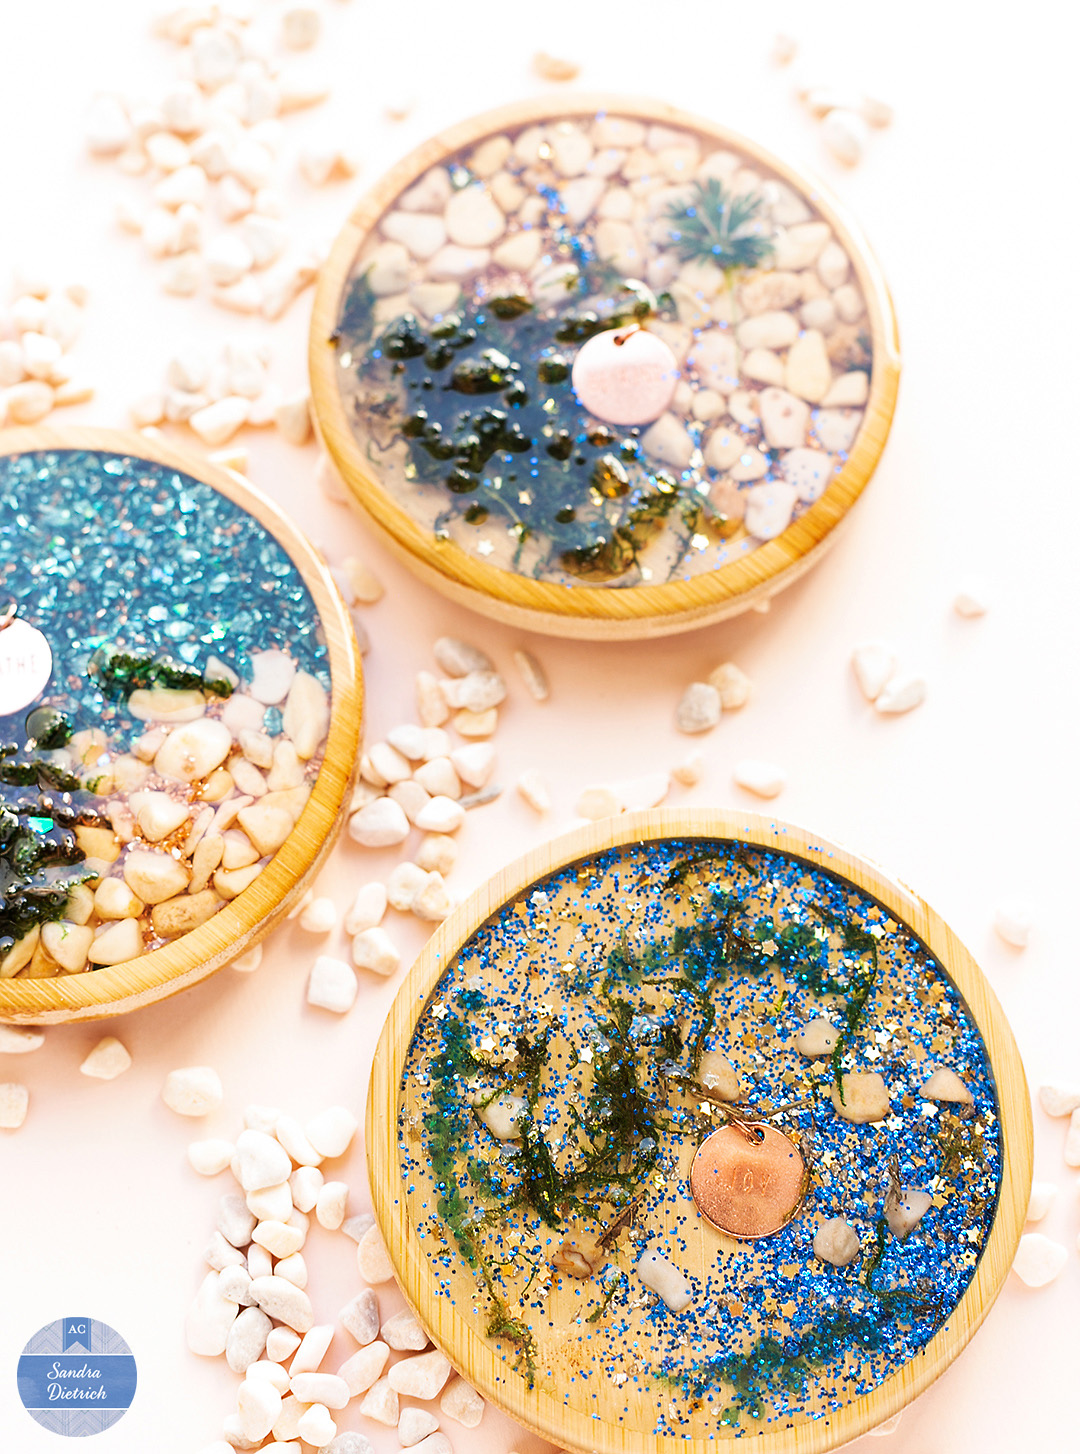 Three wood coaster filled with resin, charms, glitter, pebbles, moss. The shiny look makes these coasters special.